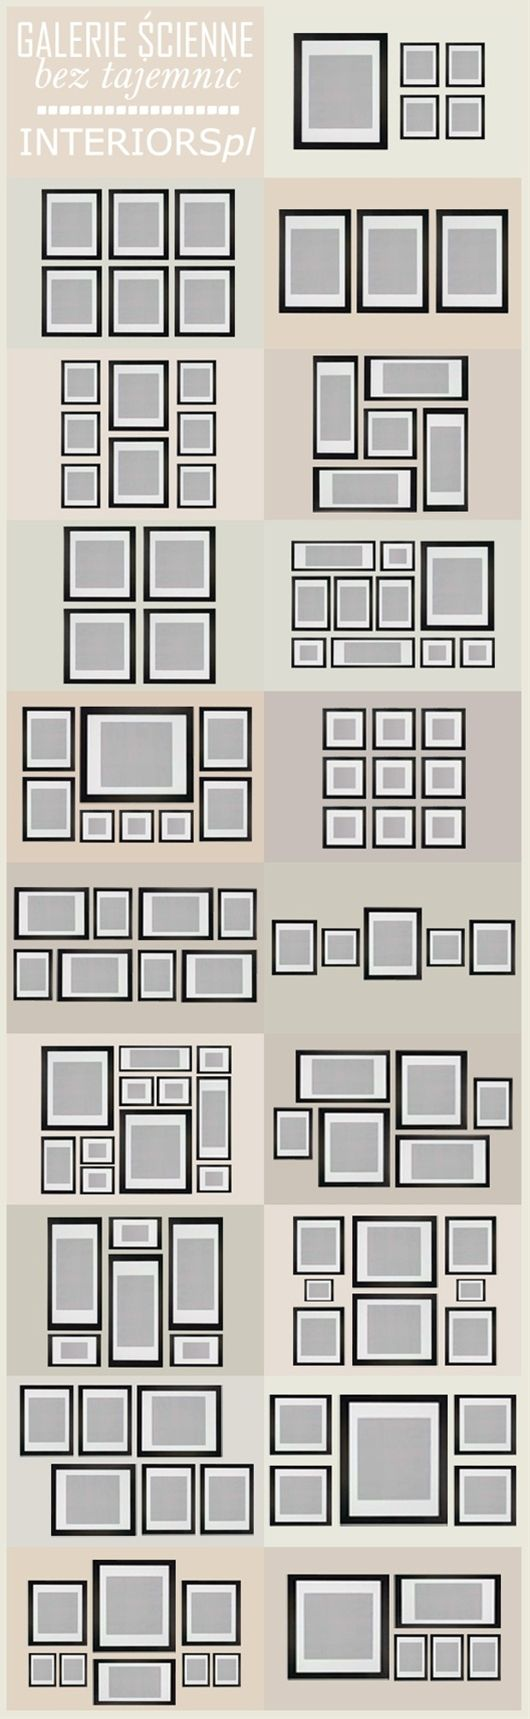 Wall collage ideas - Popular Home Decor Pins on Pinterest